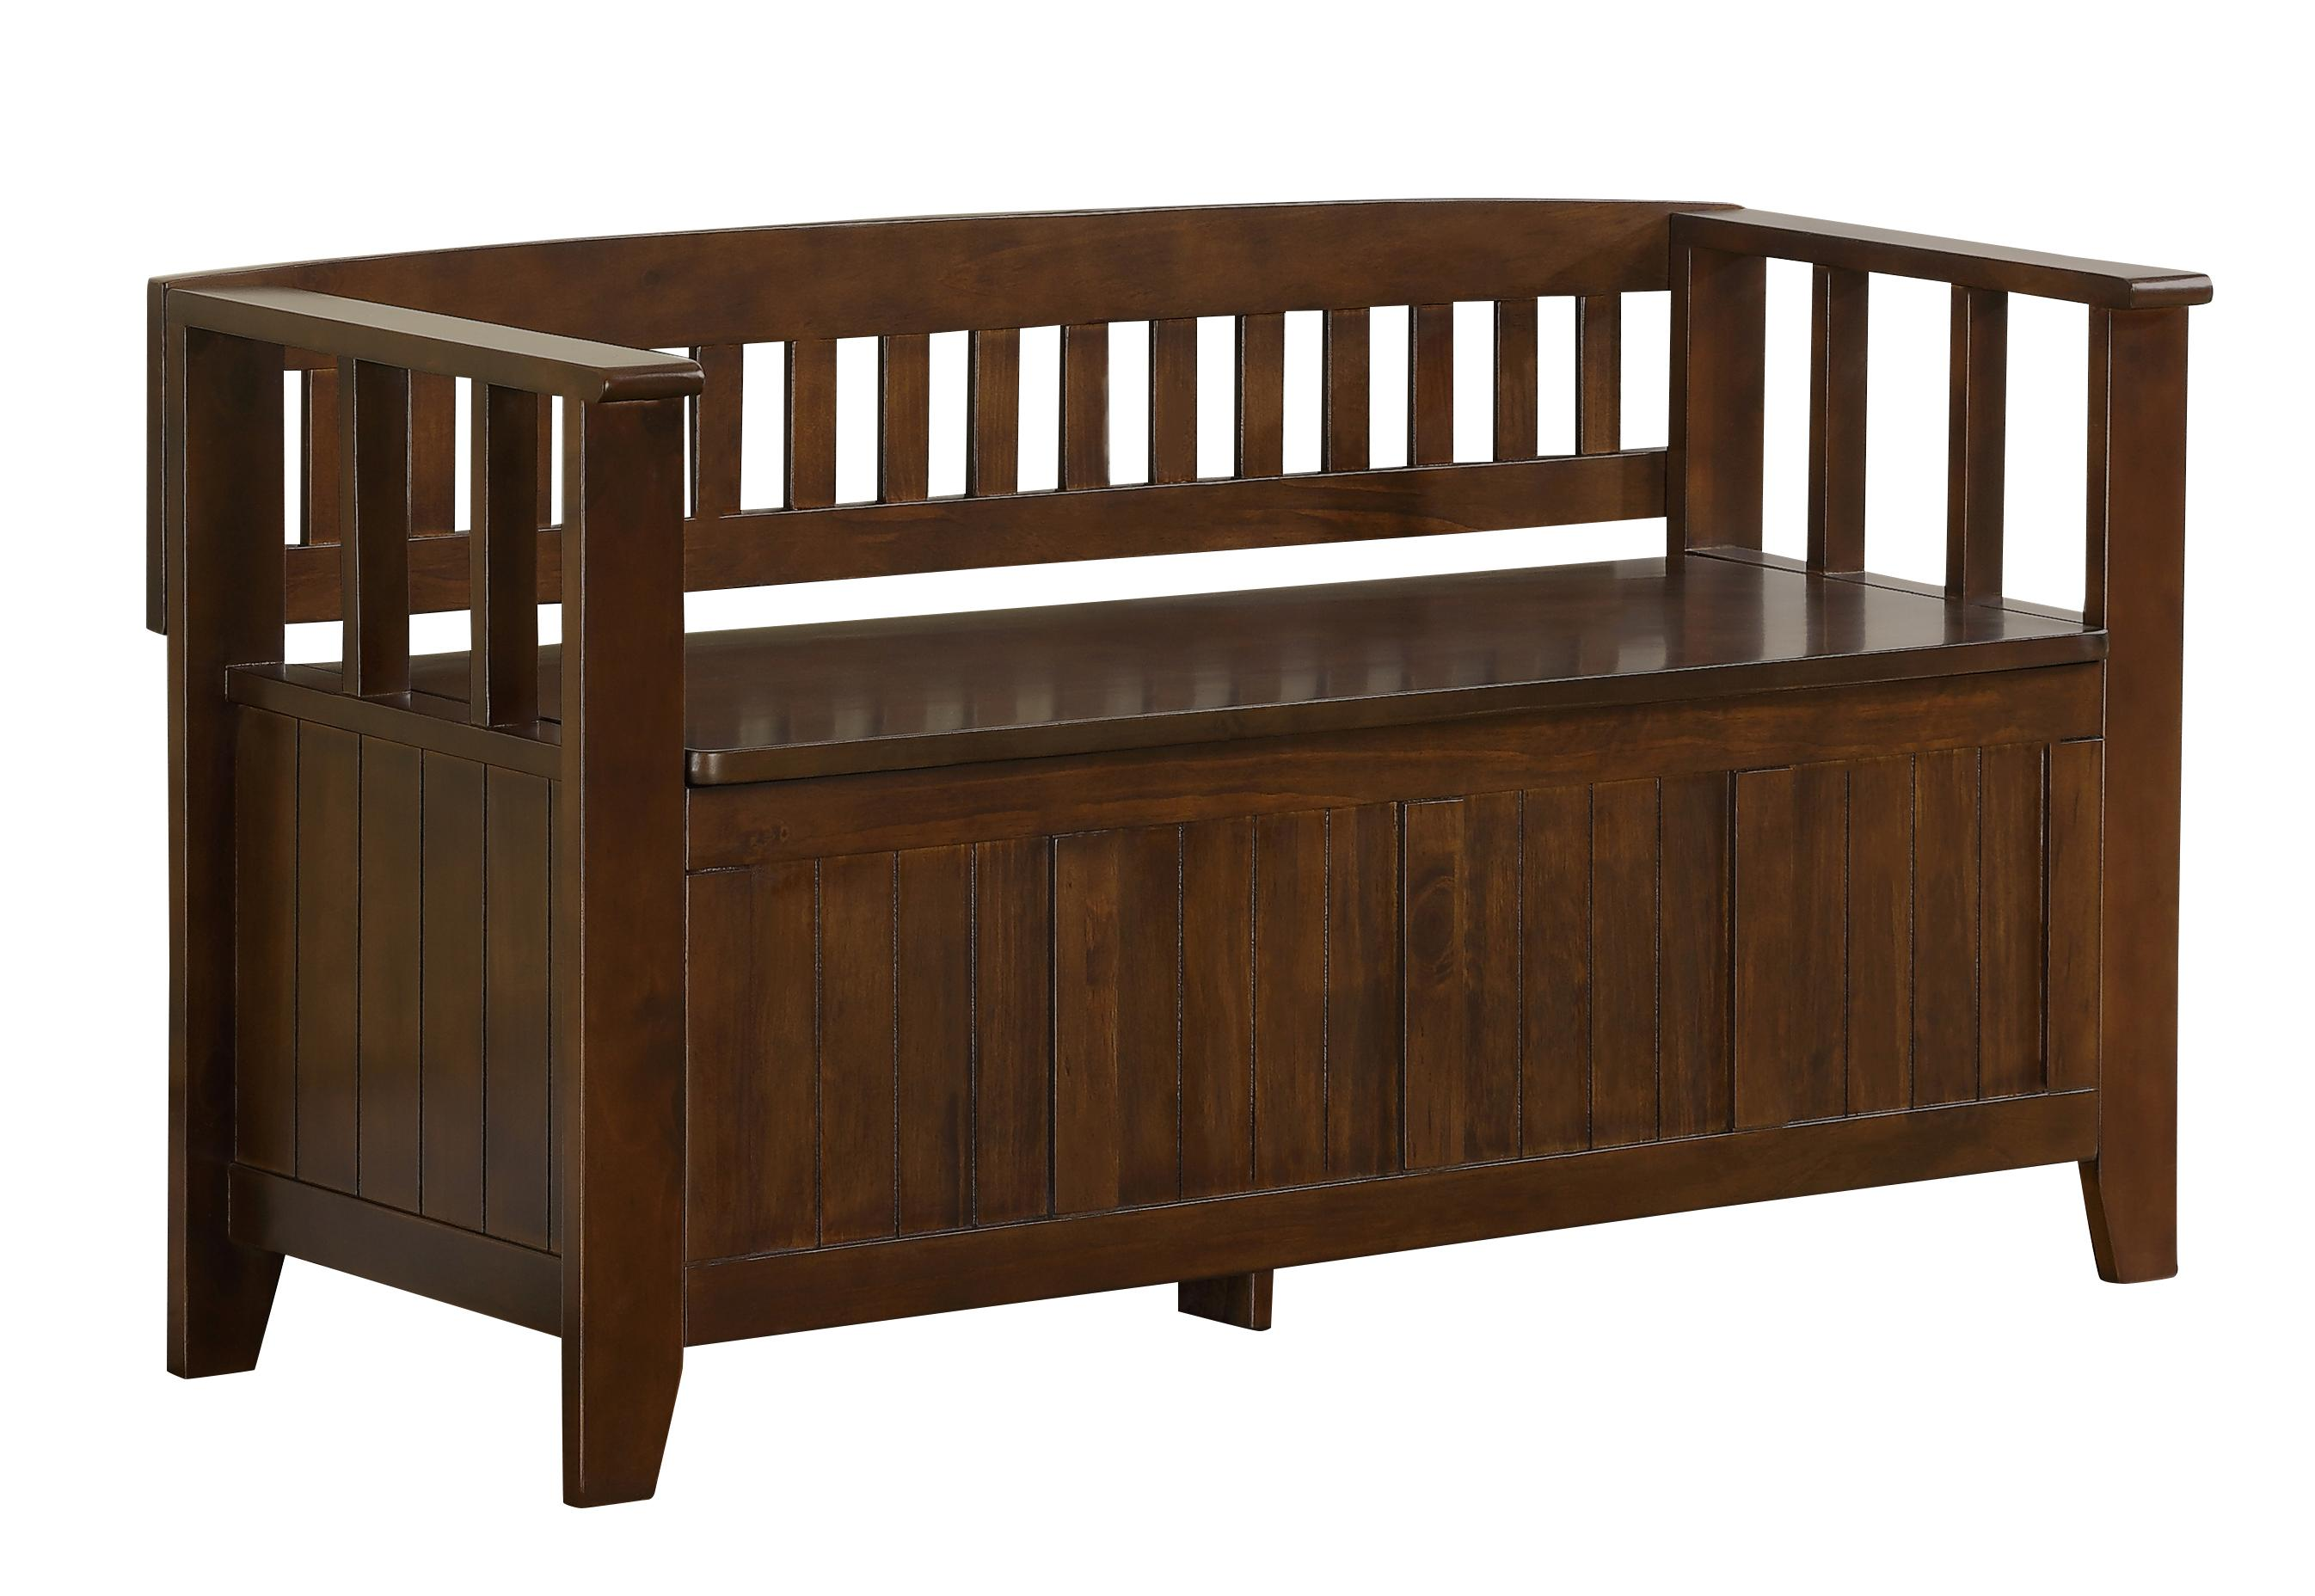 60 wide storage bench 28 images shoe bench 24 with  : 85d205de 0041 4237 85cb 4d3055acdbd5V329990272 from wallpapersist.com size 2692 x 1856 jpeg 259kB